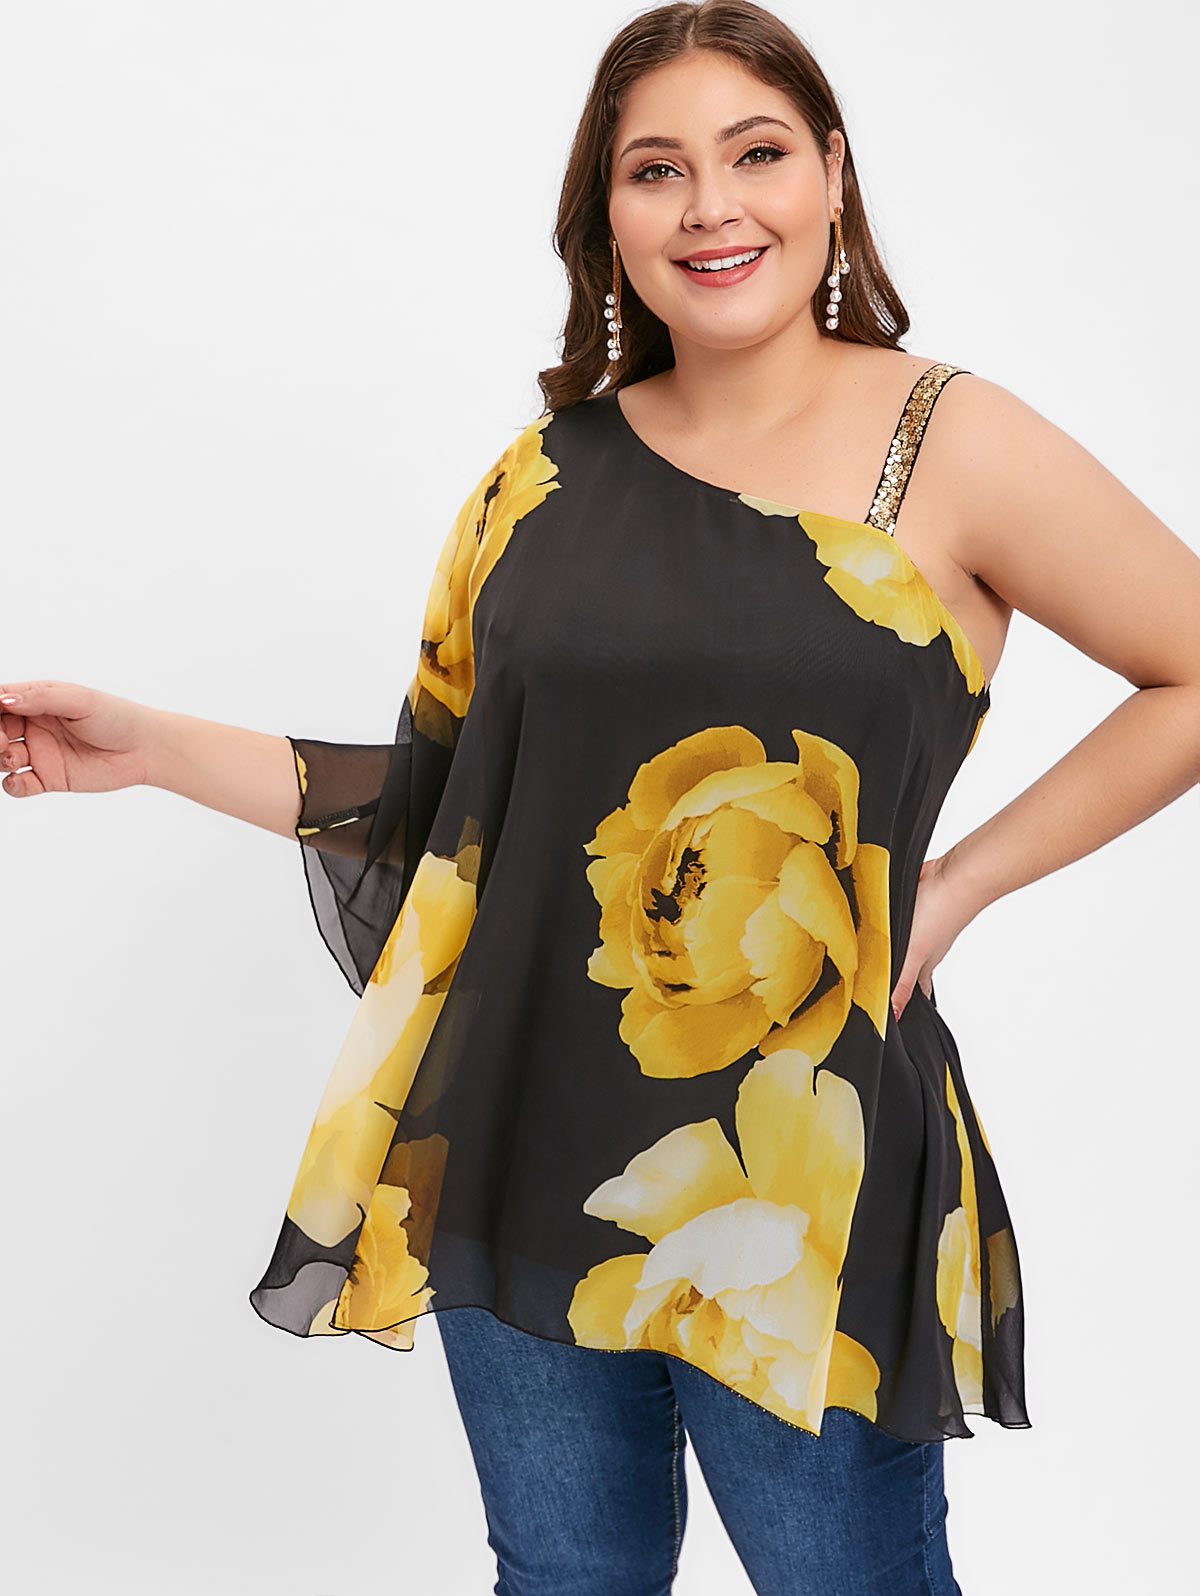 e18d59737a47 Detail Feedback Questions about Wipalo Plus Size 5XL Floral Print Blouse  Shirts Women Skew Neck Sequin Embellished One Shoulder Tops Casual Summer  Blouse ...